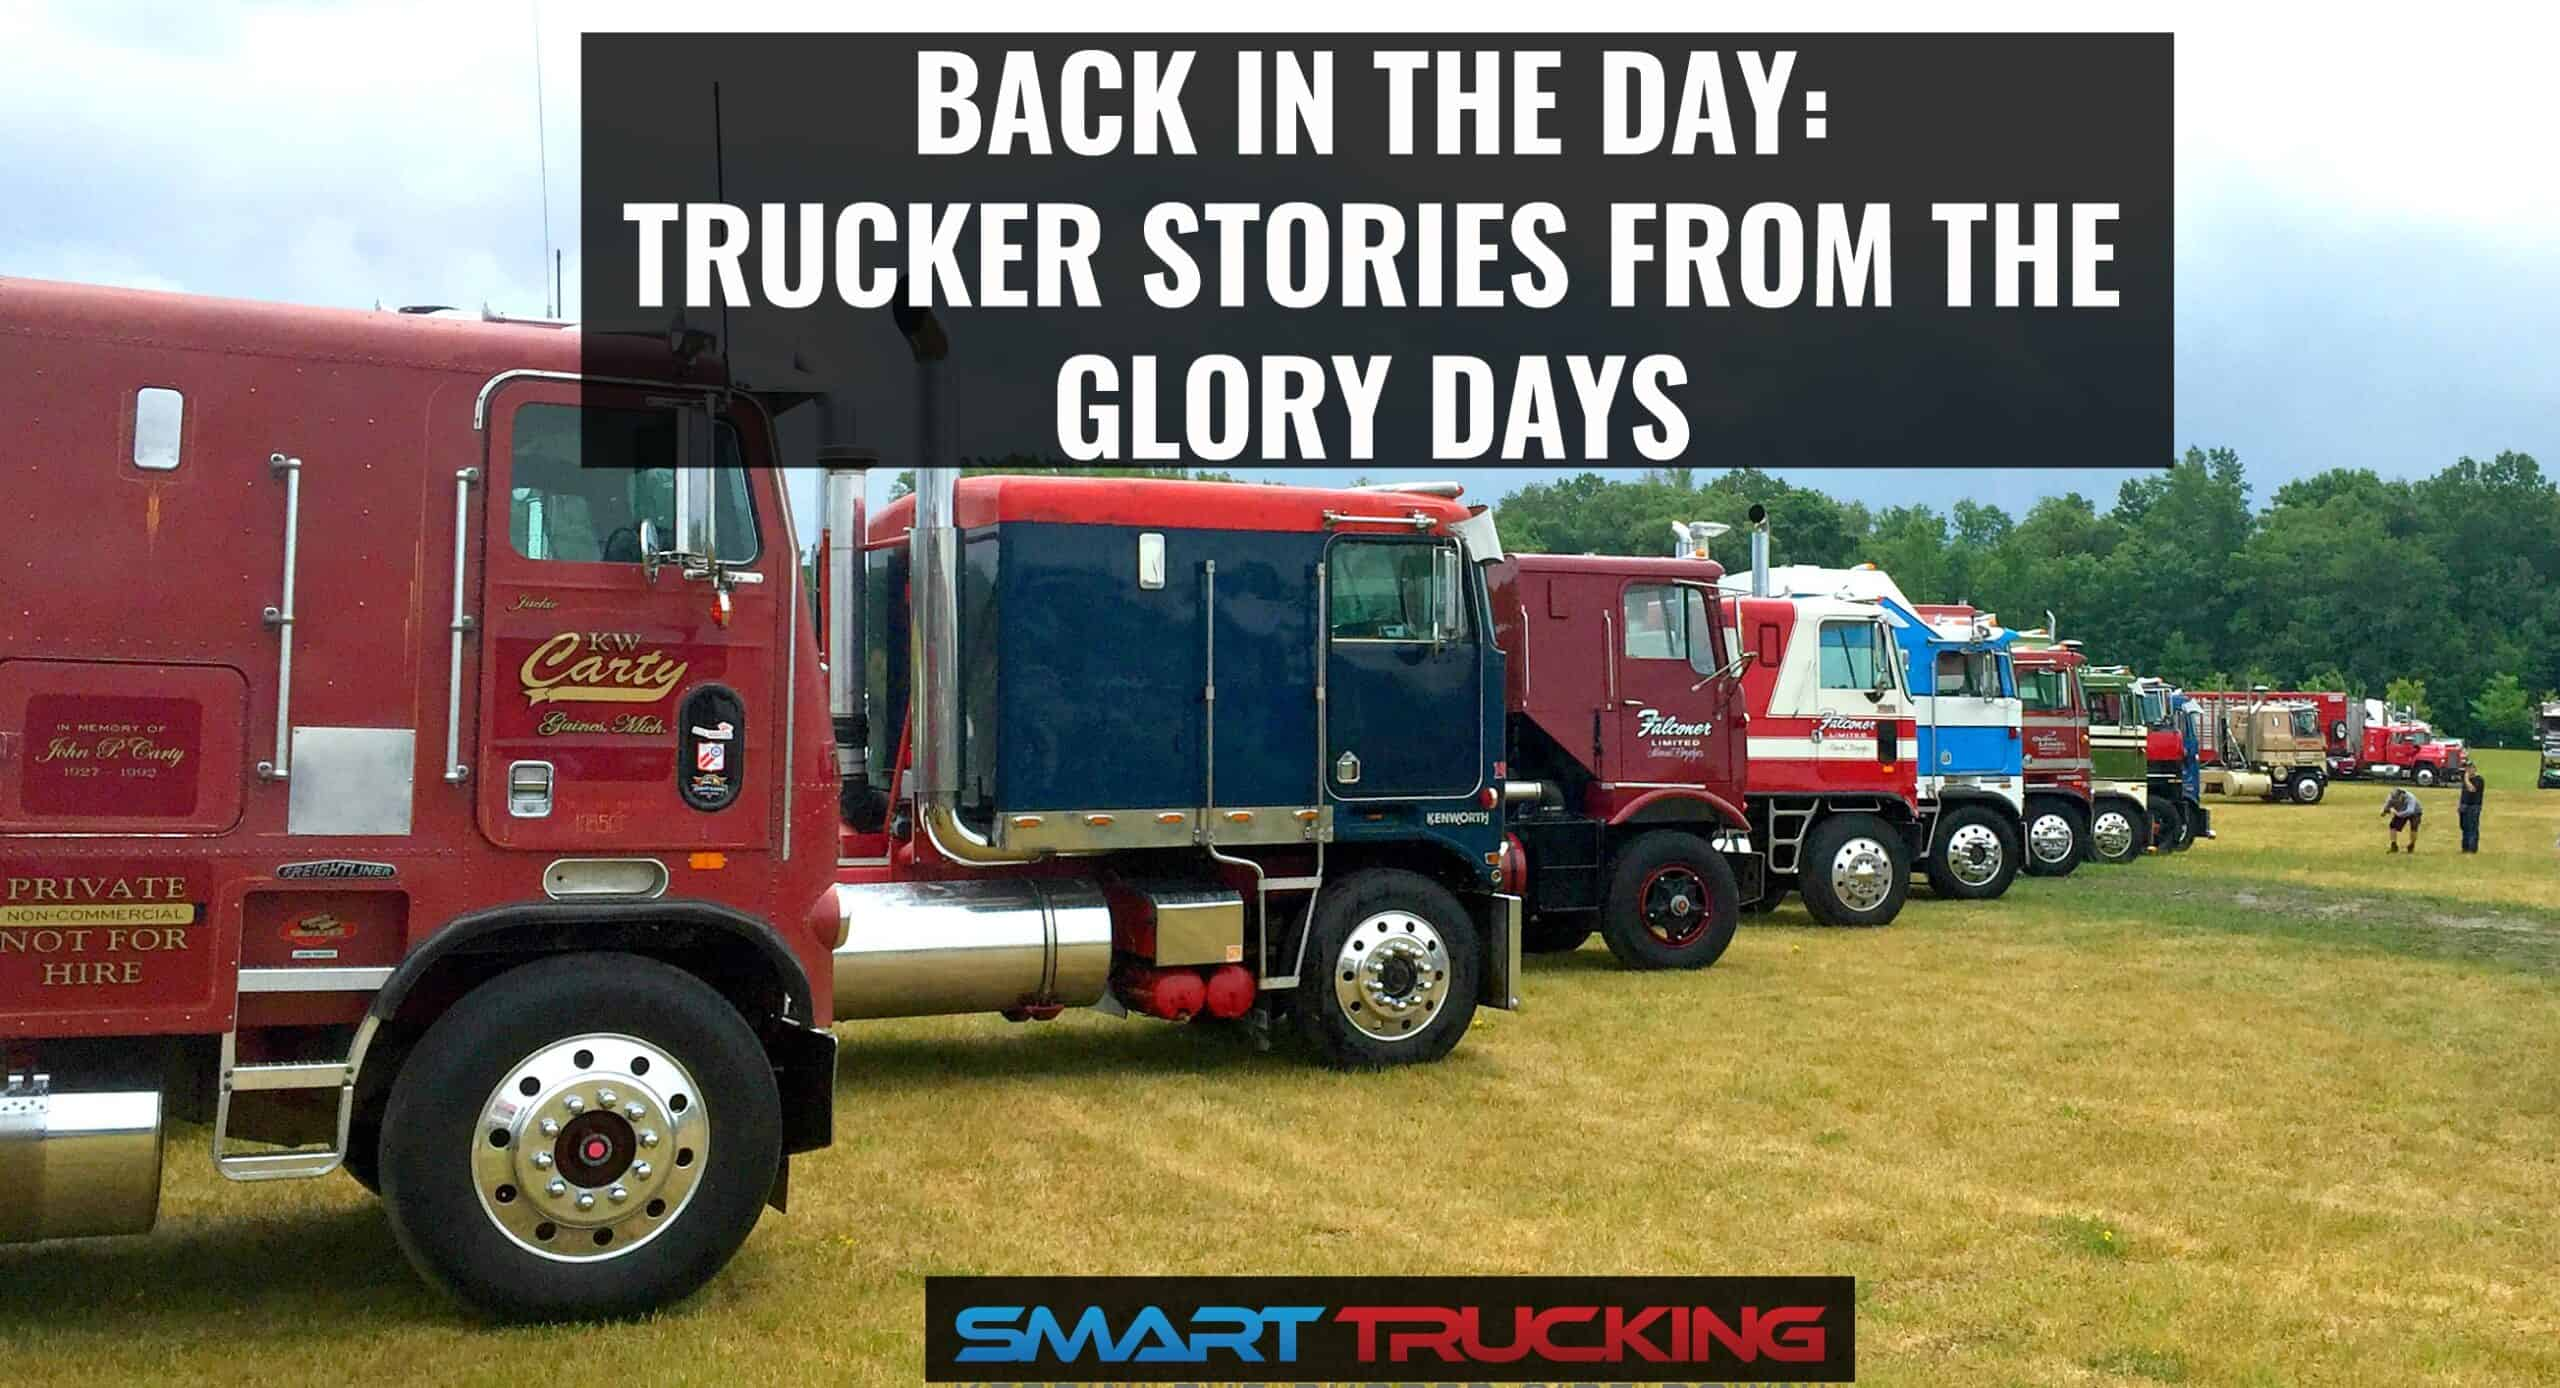 Back in the Day - Trucker Stories